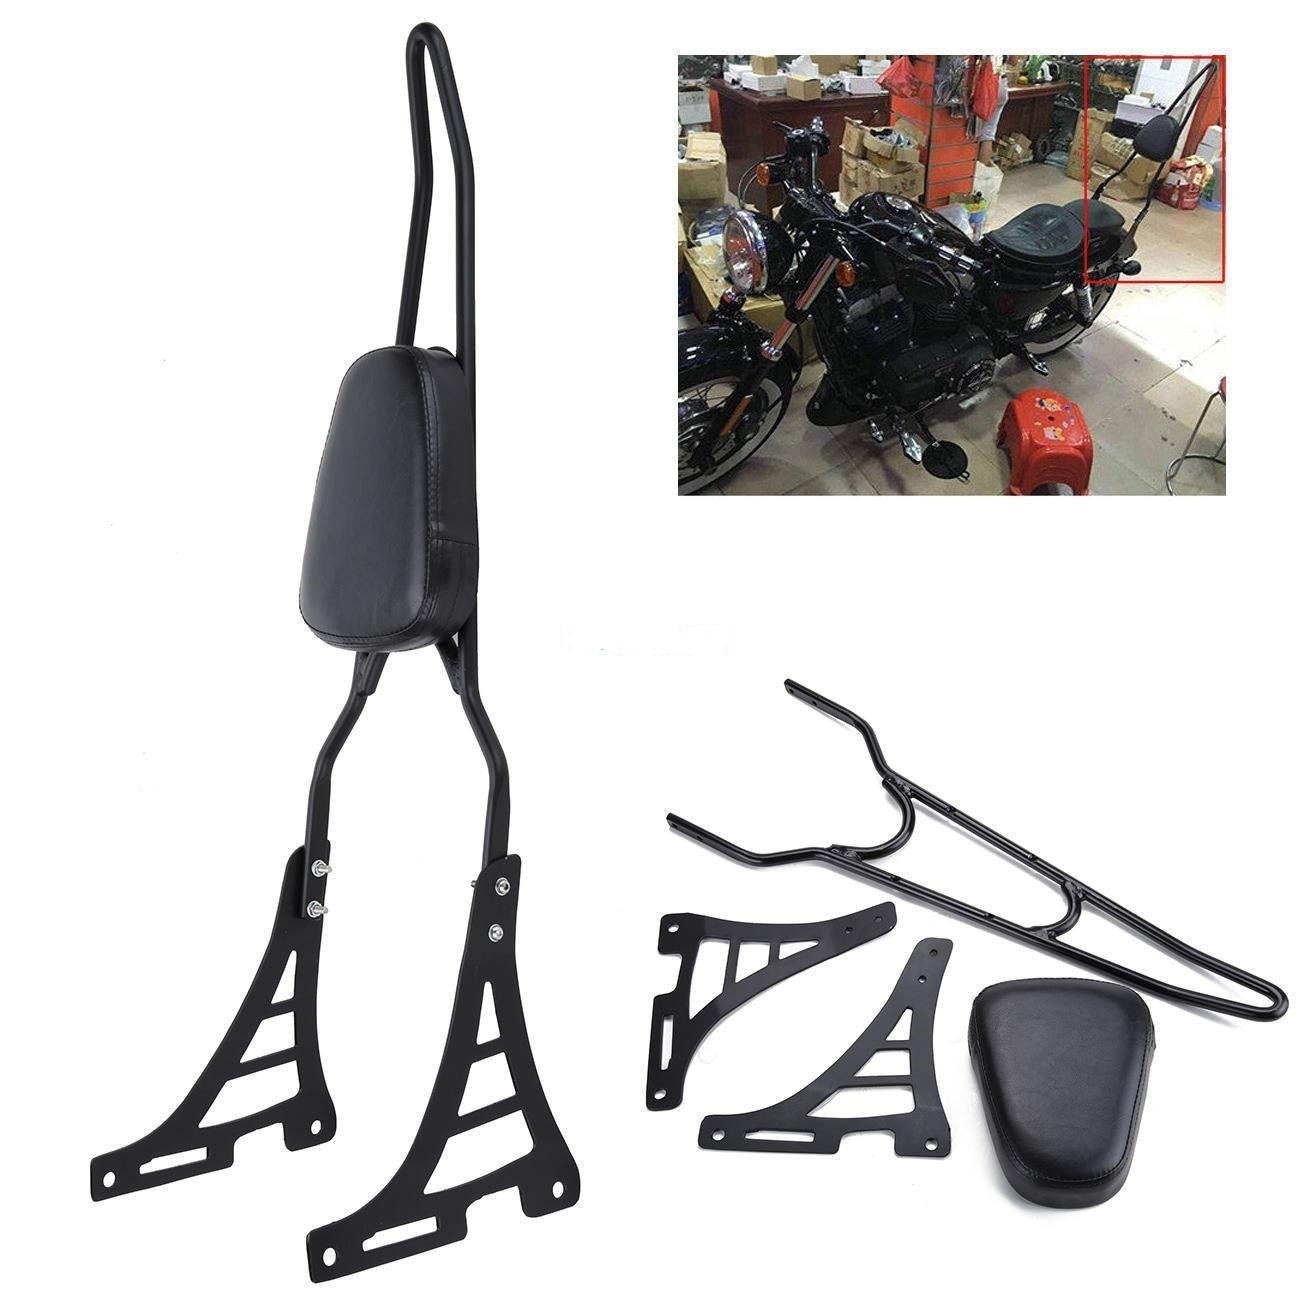 Ambienceo Black Rear Backrest Sissy Bar with Cushion Pad for Harley Davidson XL883C XL883R XL1200R XL1200C XL1200S XLH883 XLH1200 by Ambienceo